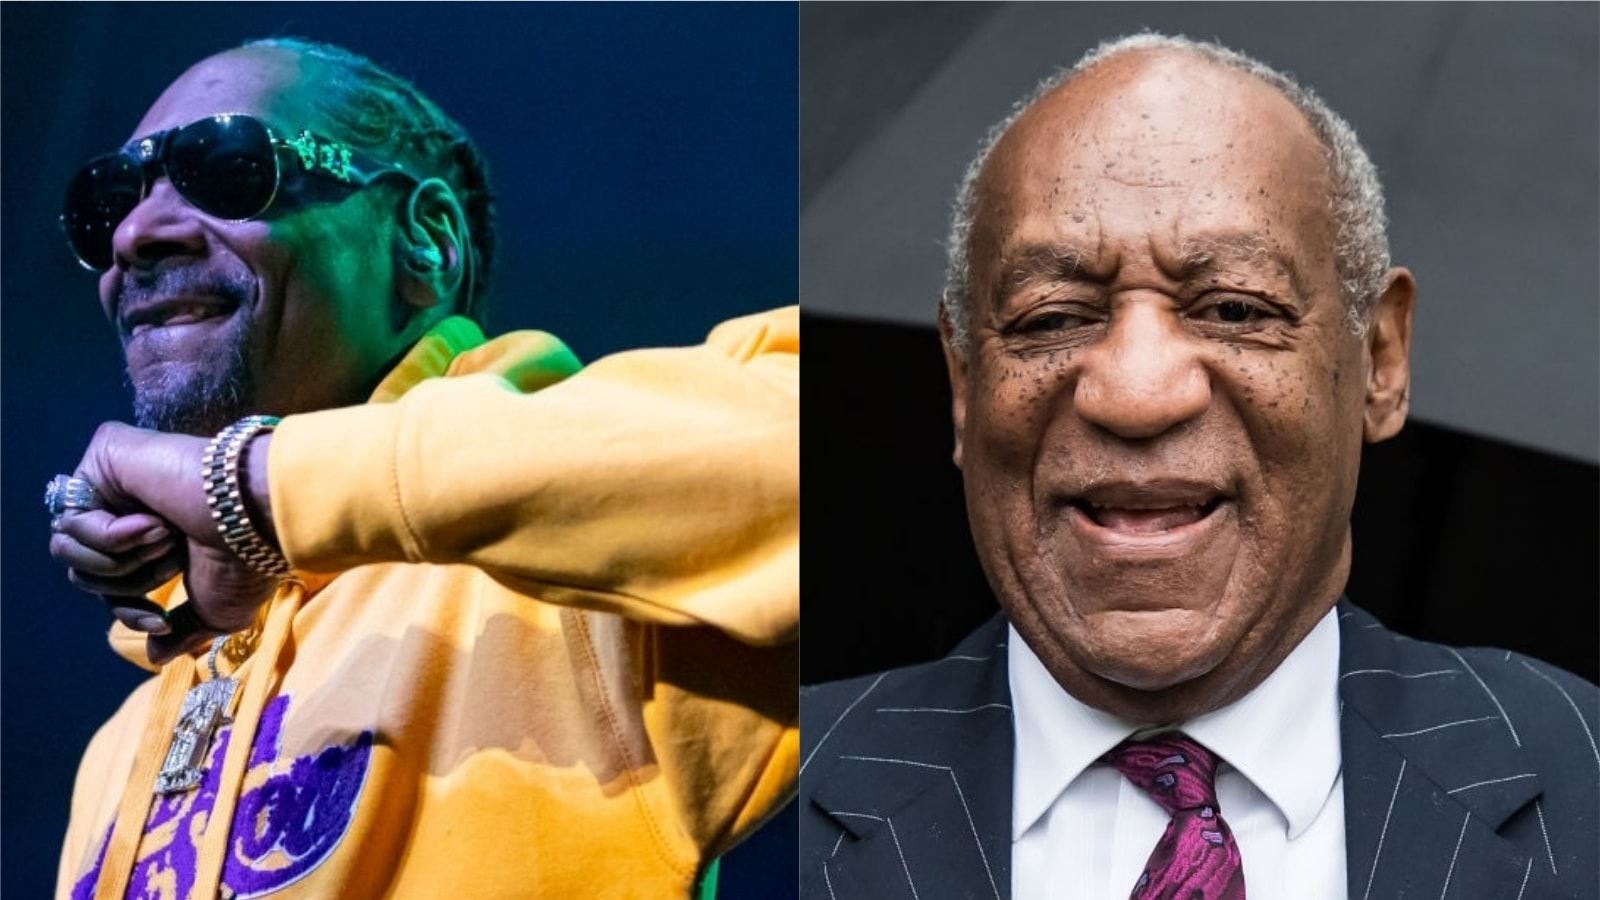 Snoop Dogg And Bill Cosby Engage In Nauseating Love Fest After Snoop Capes For Him During Social Media Tirade